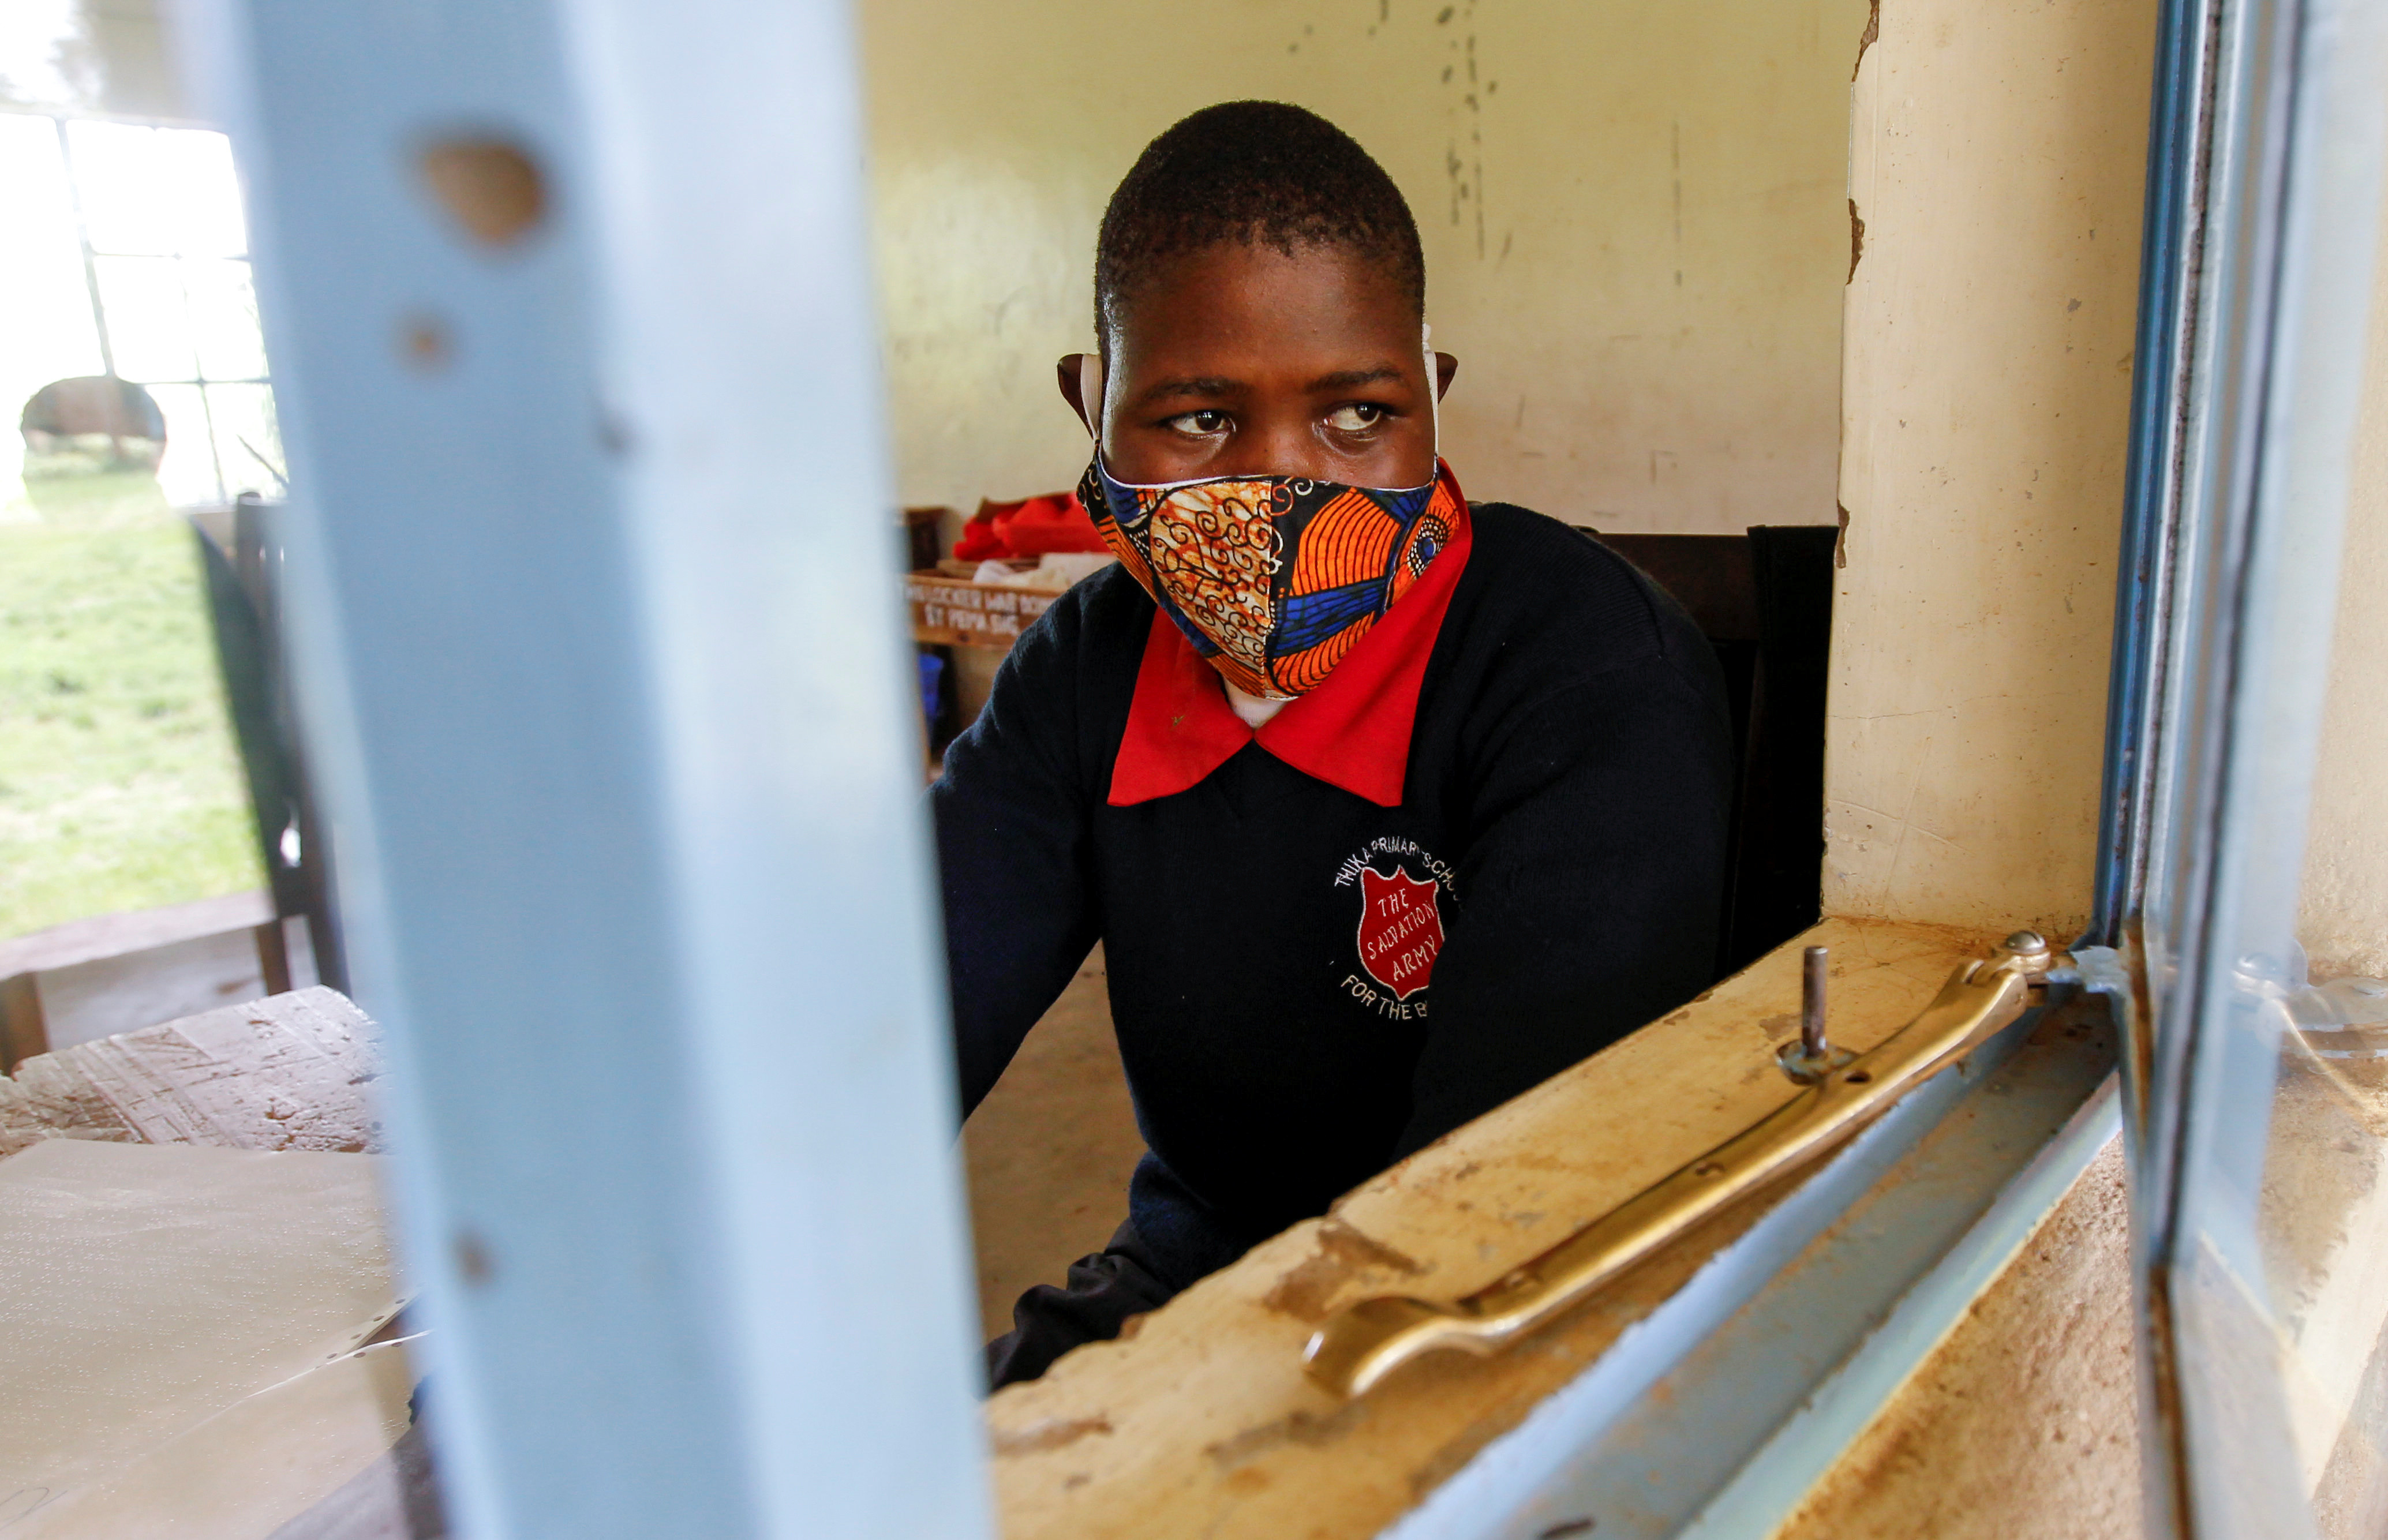 A Kenyan pupil attends a lesson, wearing a protective mask amid the spread of the coronavirus disease.